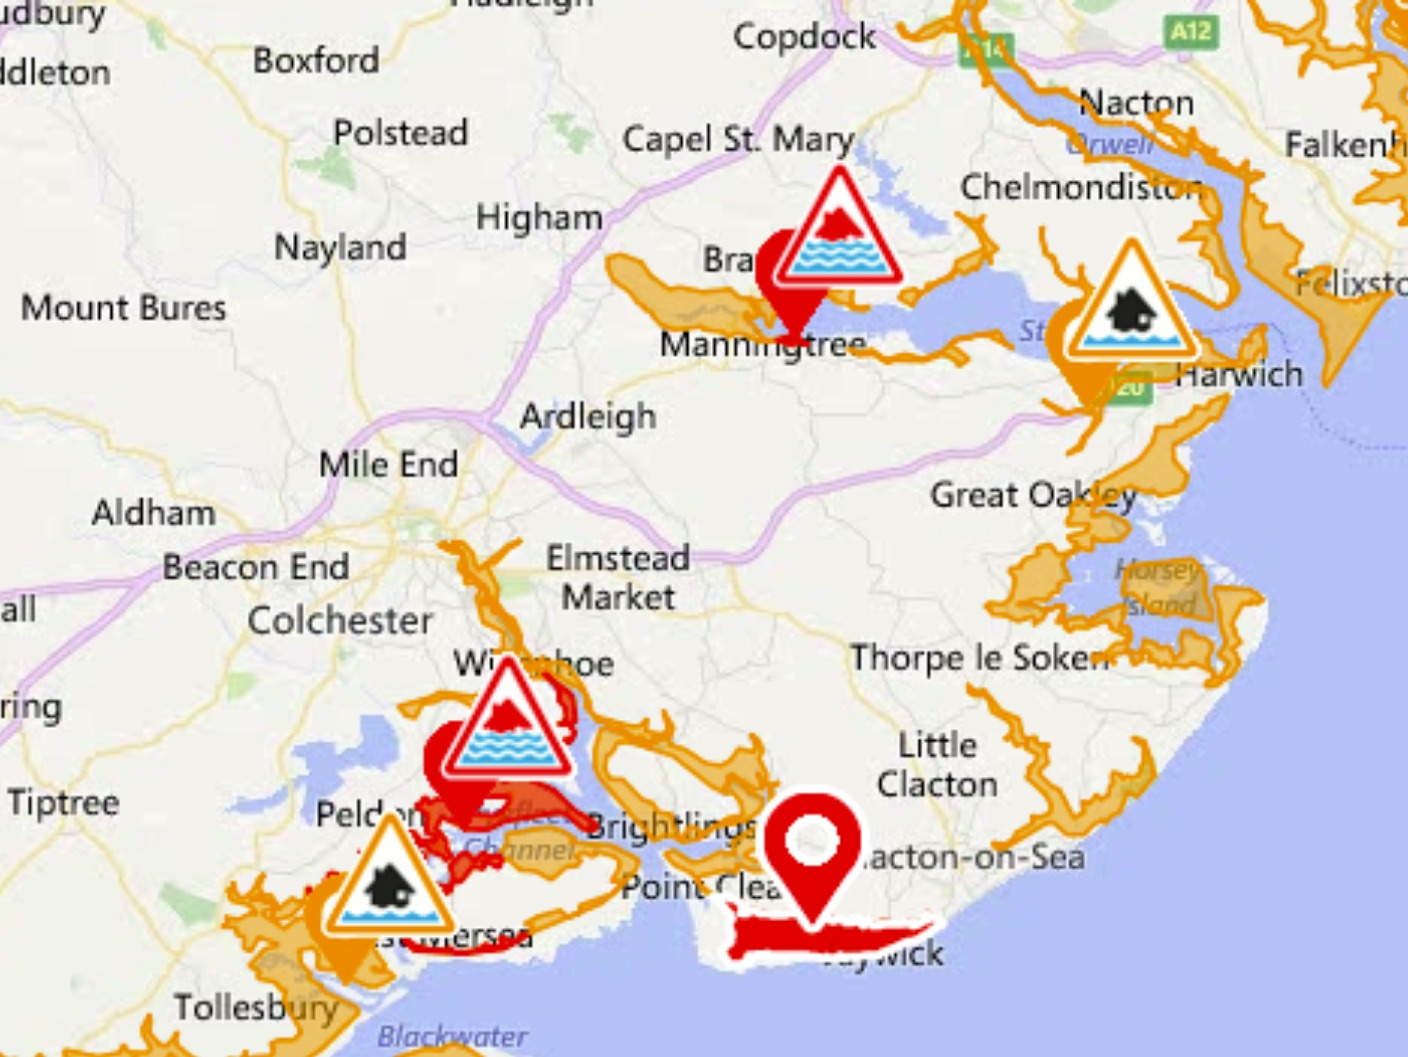 severe flood warnings issued for essex coast with risk of danger to life anglia  itv news. severe flood warnings issued for essex coast with risk of danger